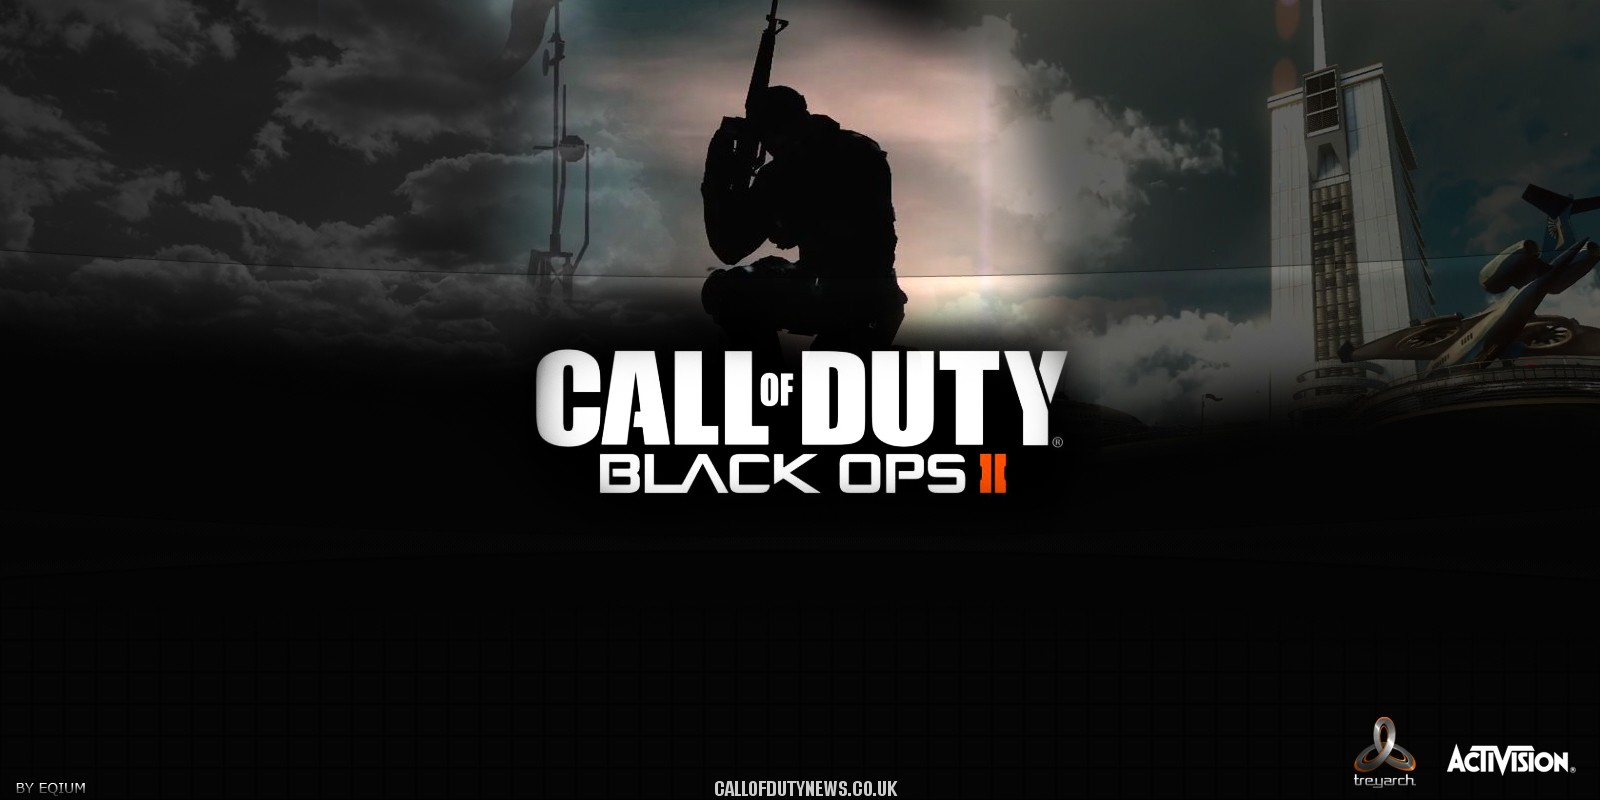 Wallpapers Of Call Of Duty Black Ops 2 (35 Wallpapers) - Adorable .